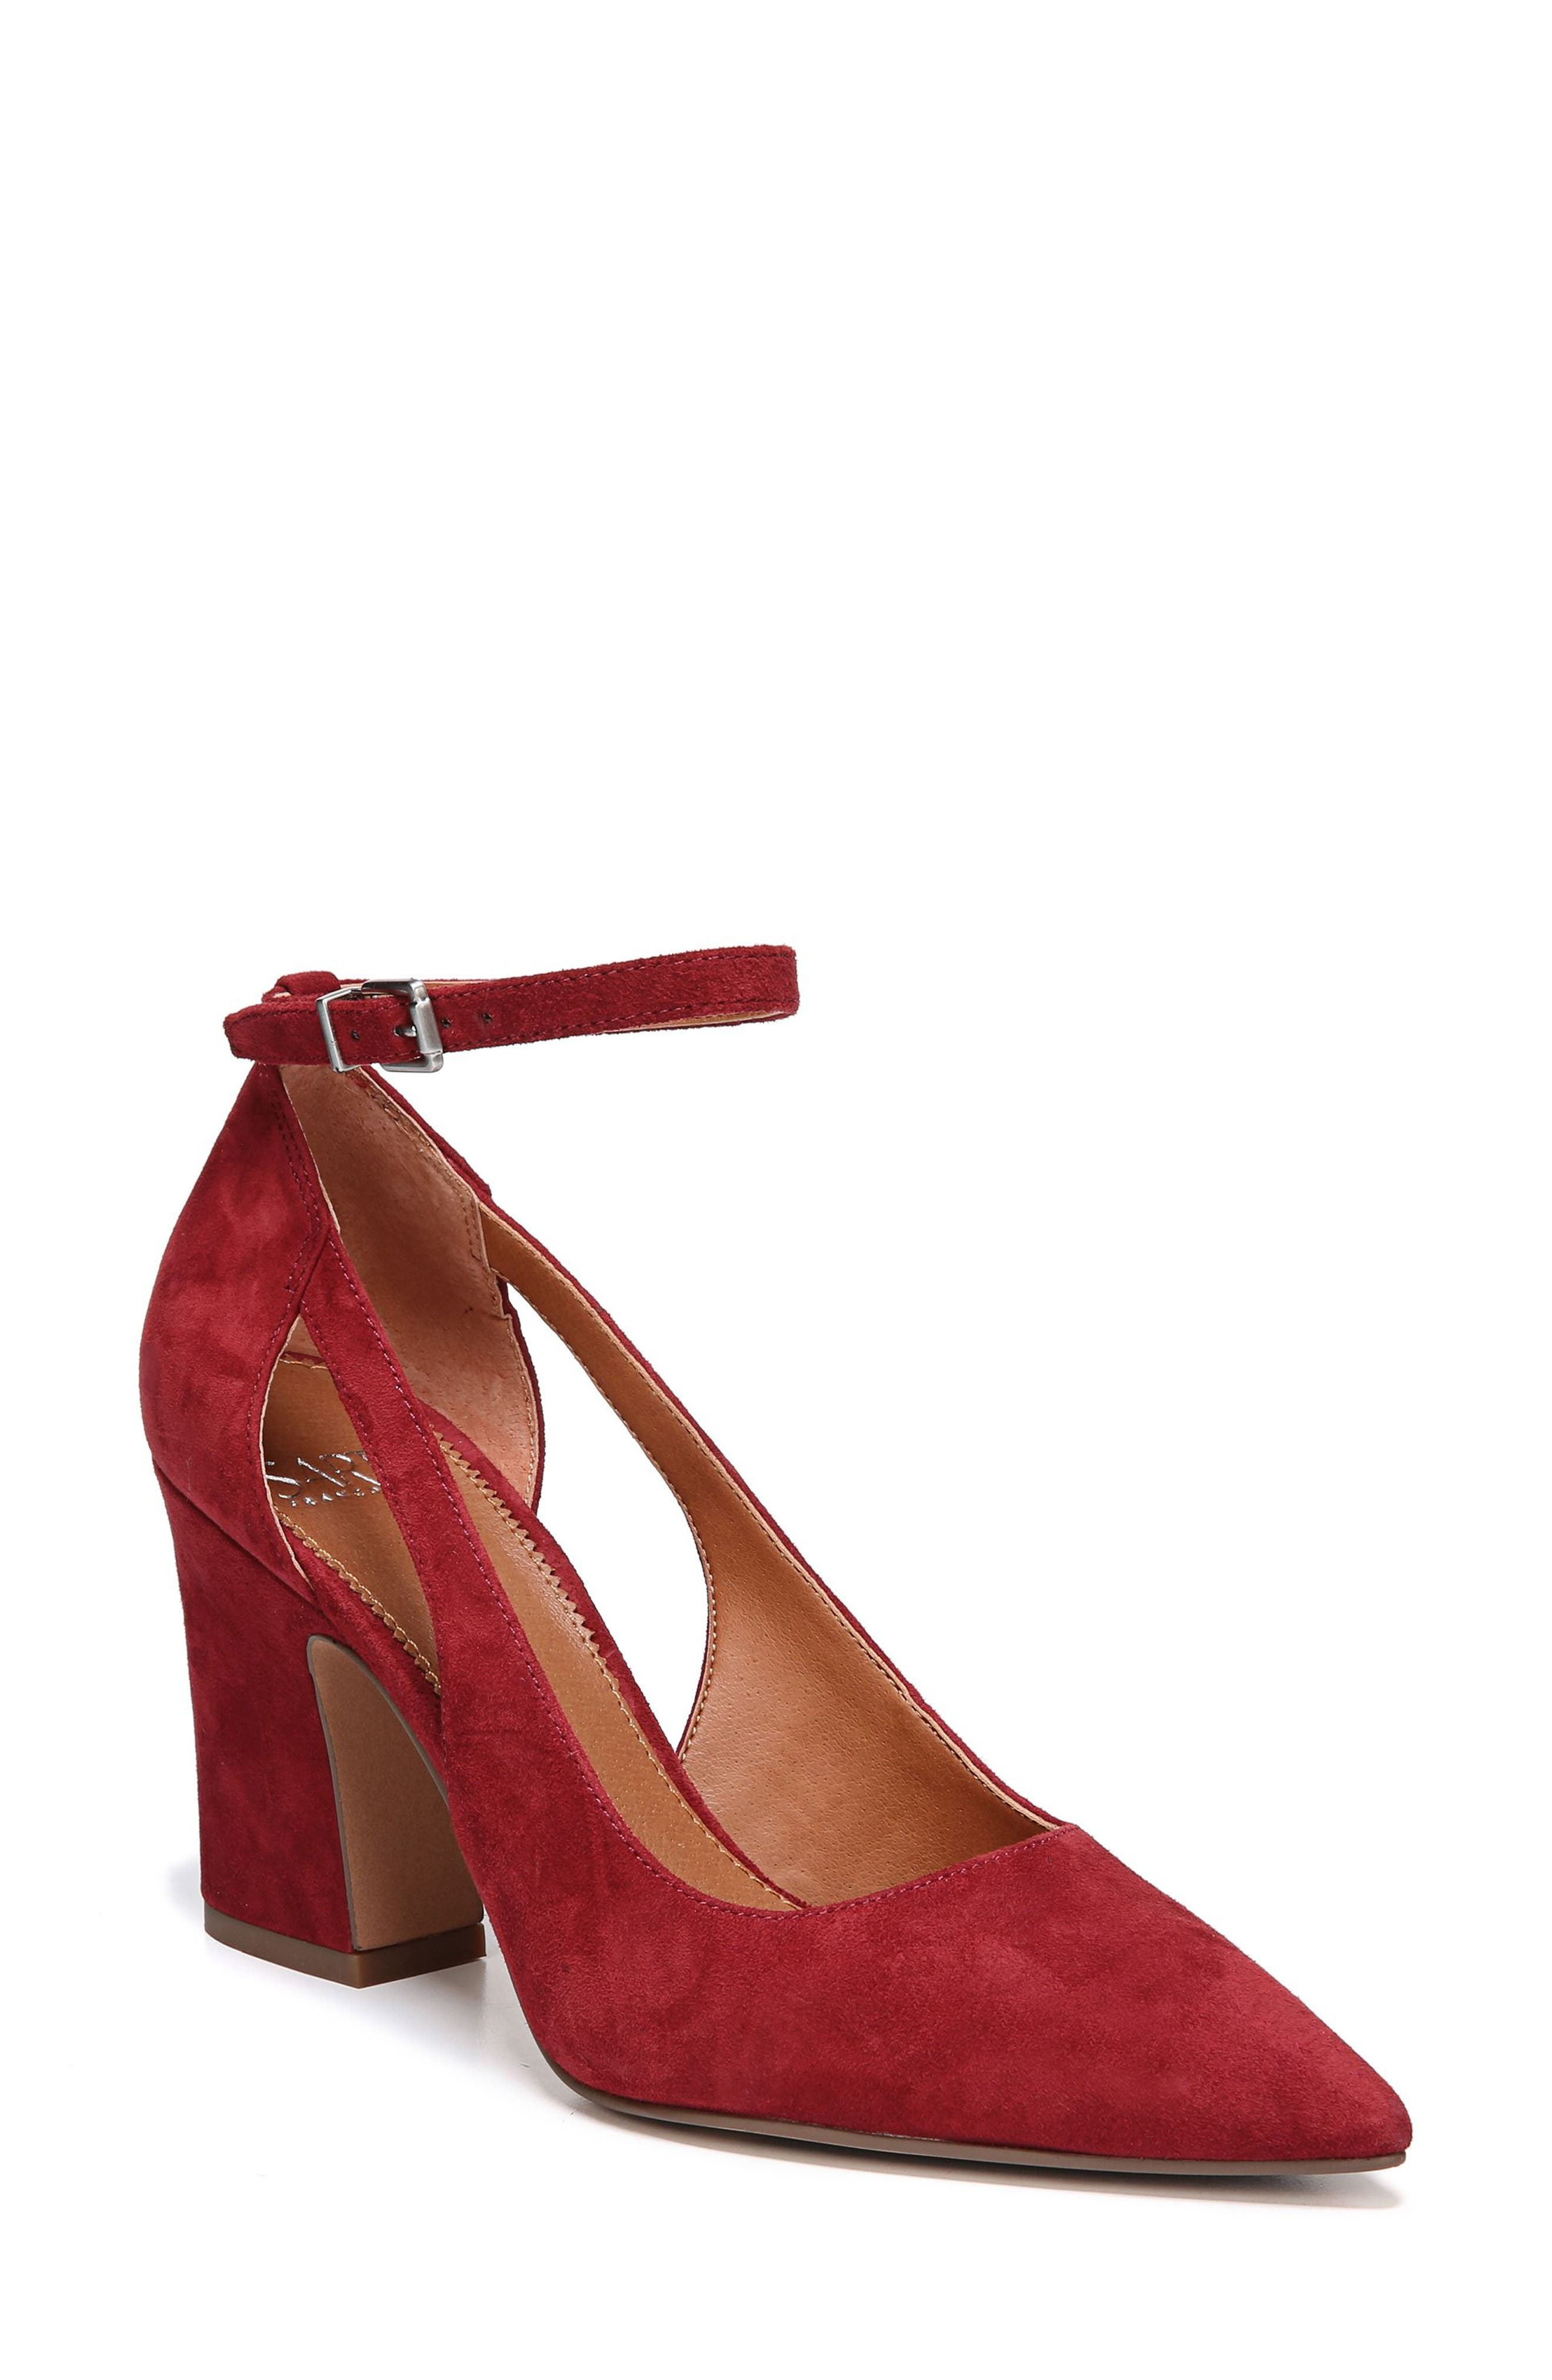 Kalindi Pump,                         Main,                         color, Syrah Suede